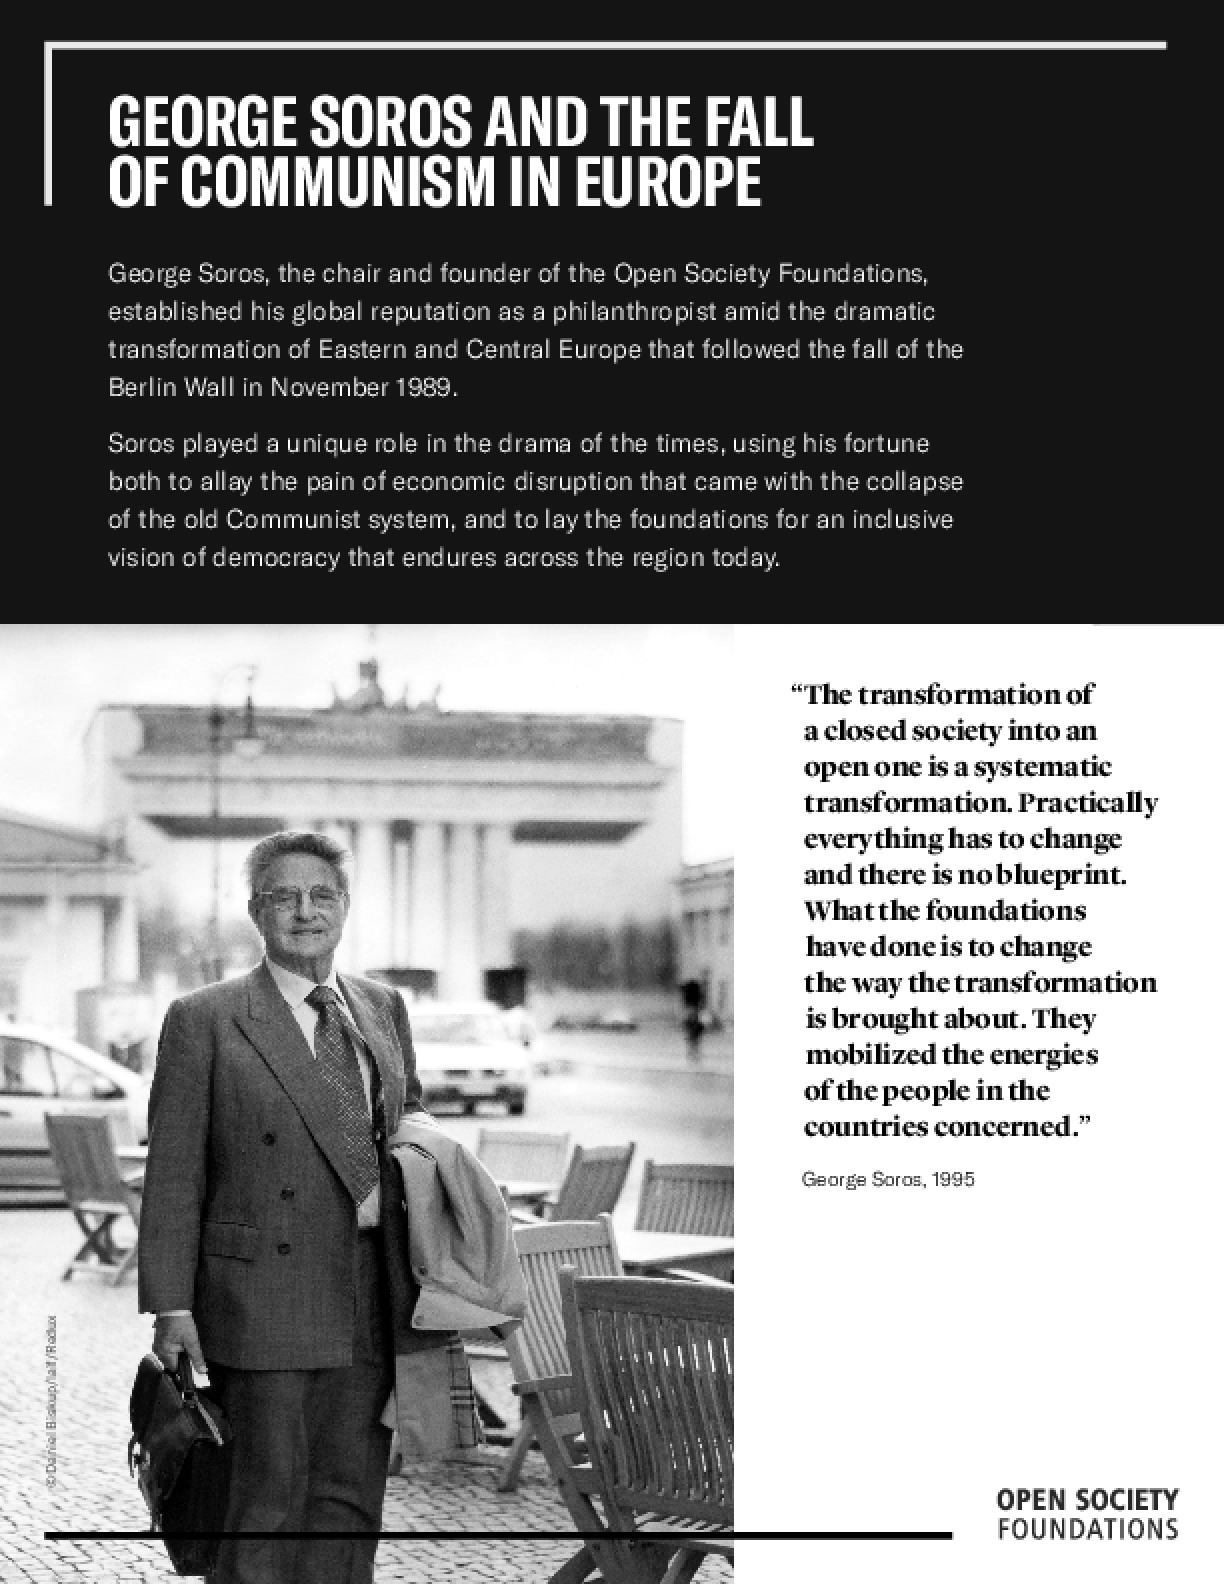 George Soros and the Fall of Communism in Europe